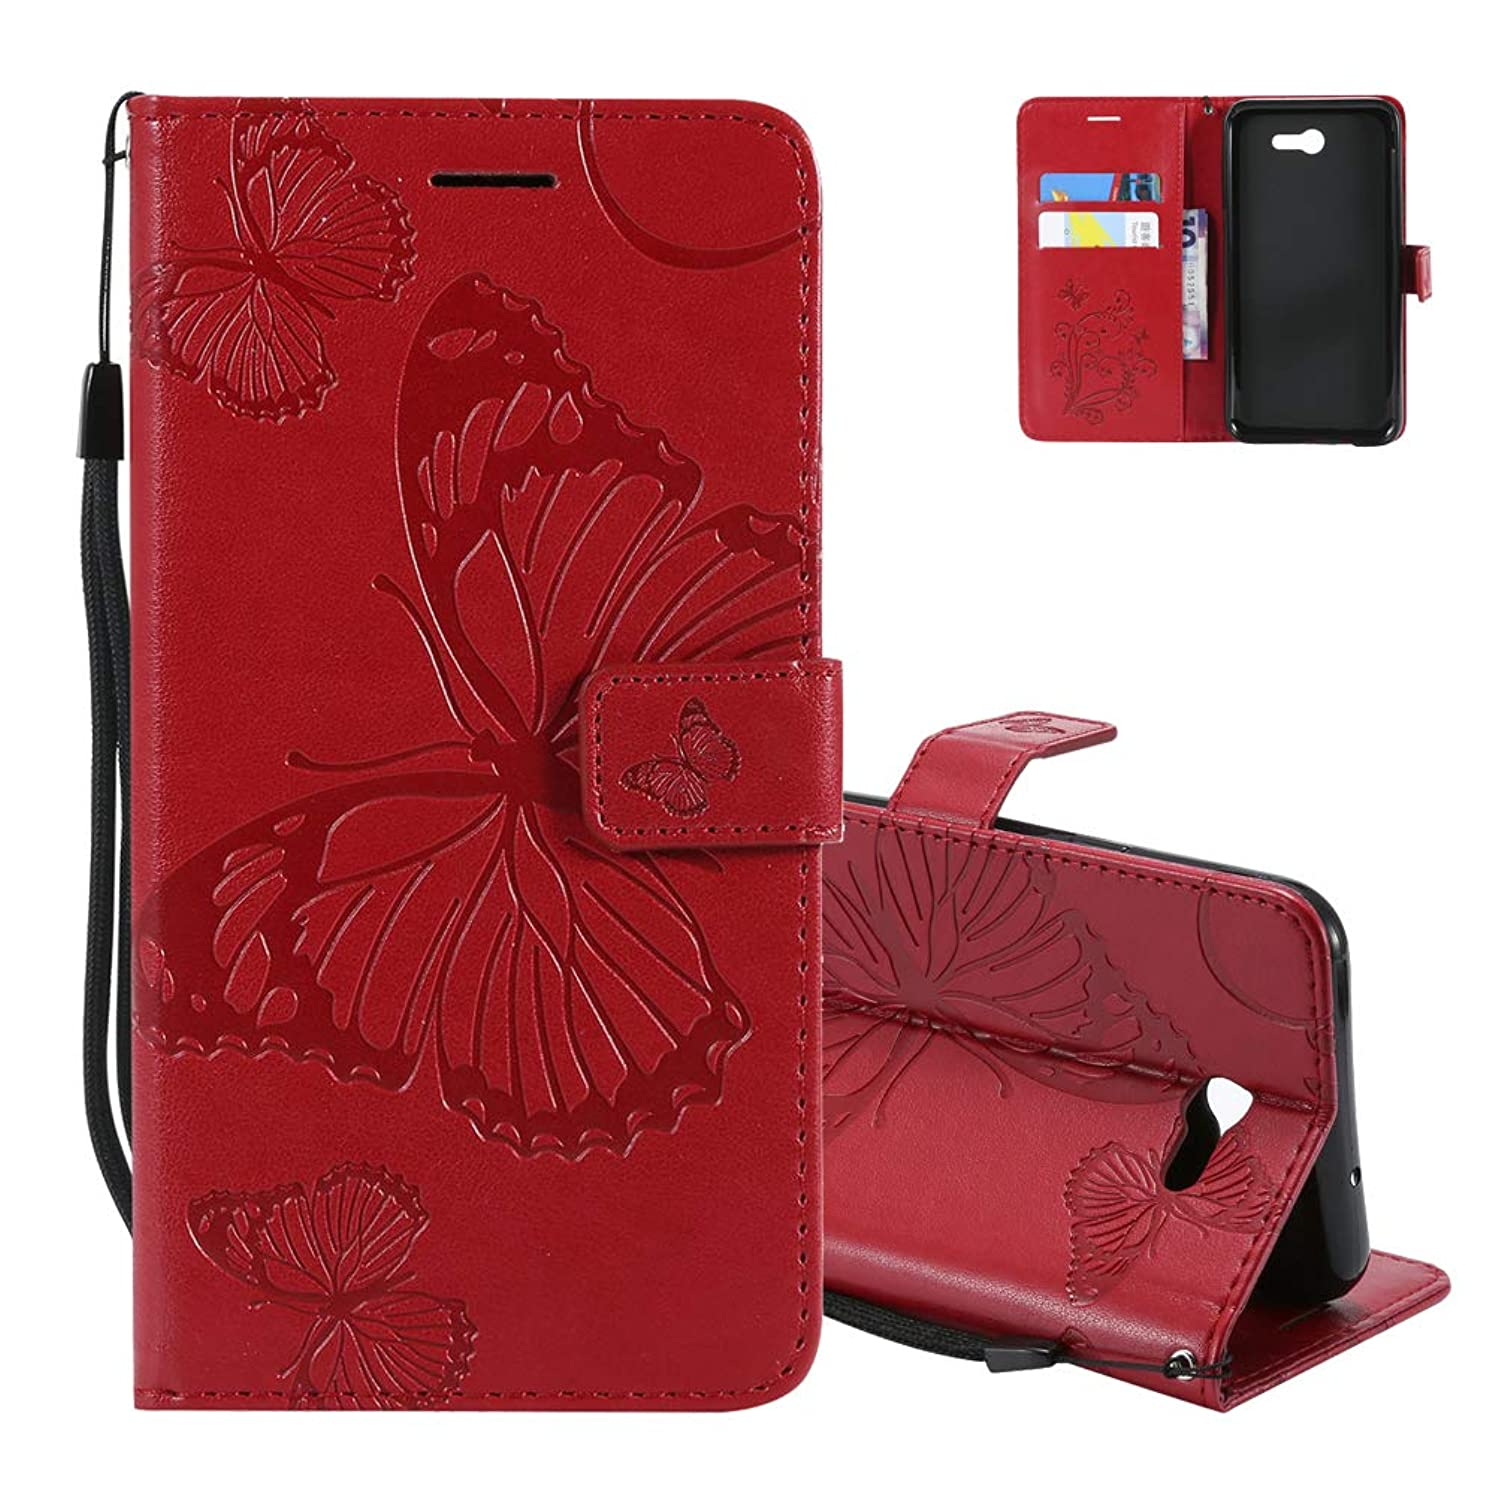 Wallet Flip Case Samsung Galaxy J7 V/J7 Perx/J7 Sky Pro/J7 Prime S727VL Wrist Strap Card Holder Aeeque Slim Fit Embossed Butterfly PU Leather Phone Case Cover Galaxy J7 2017, Red